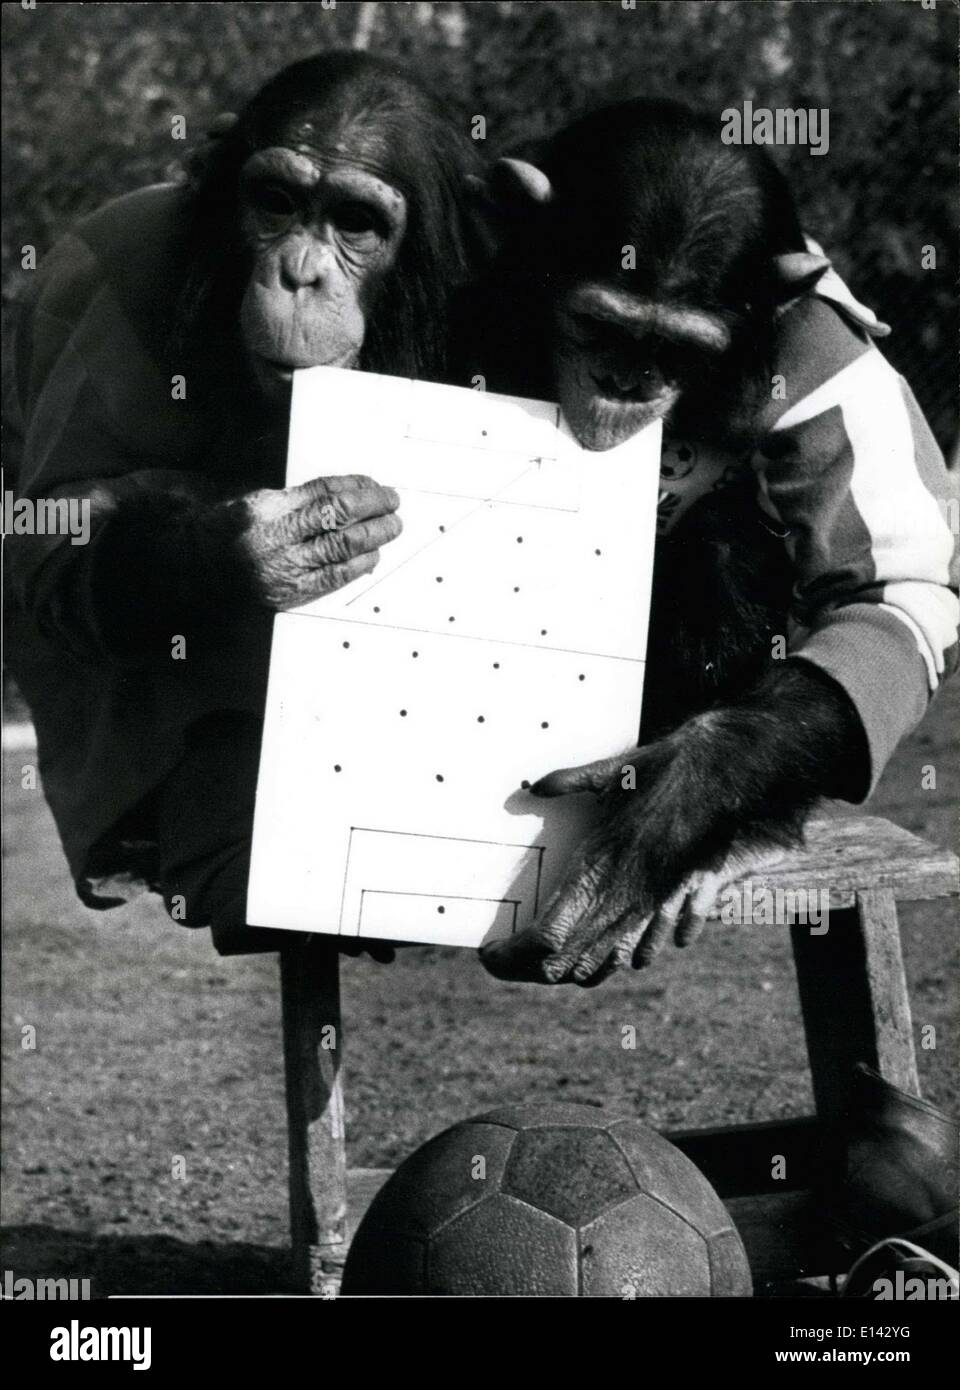 Mar. 31, 2012 - High level strategy talks before the game.The World Cup May Be Over, Bout Not For The Chimps: Monkey business caries on football, season or not. These two chimpanzees from the Munich Zoo in Hallabrunn, Germany, would still be happy to be football's new Superstars. Of Course football should be played with the feet, not the hands, but we'll overlook that and forgive the chimps it they're not the World's best players. But they make excellent goalkeeper, with the added advantages of using all-fours! - Stock Image